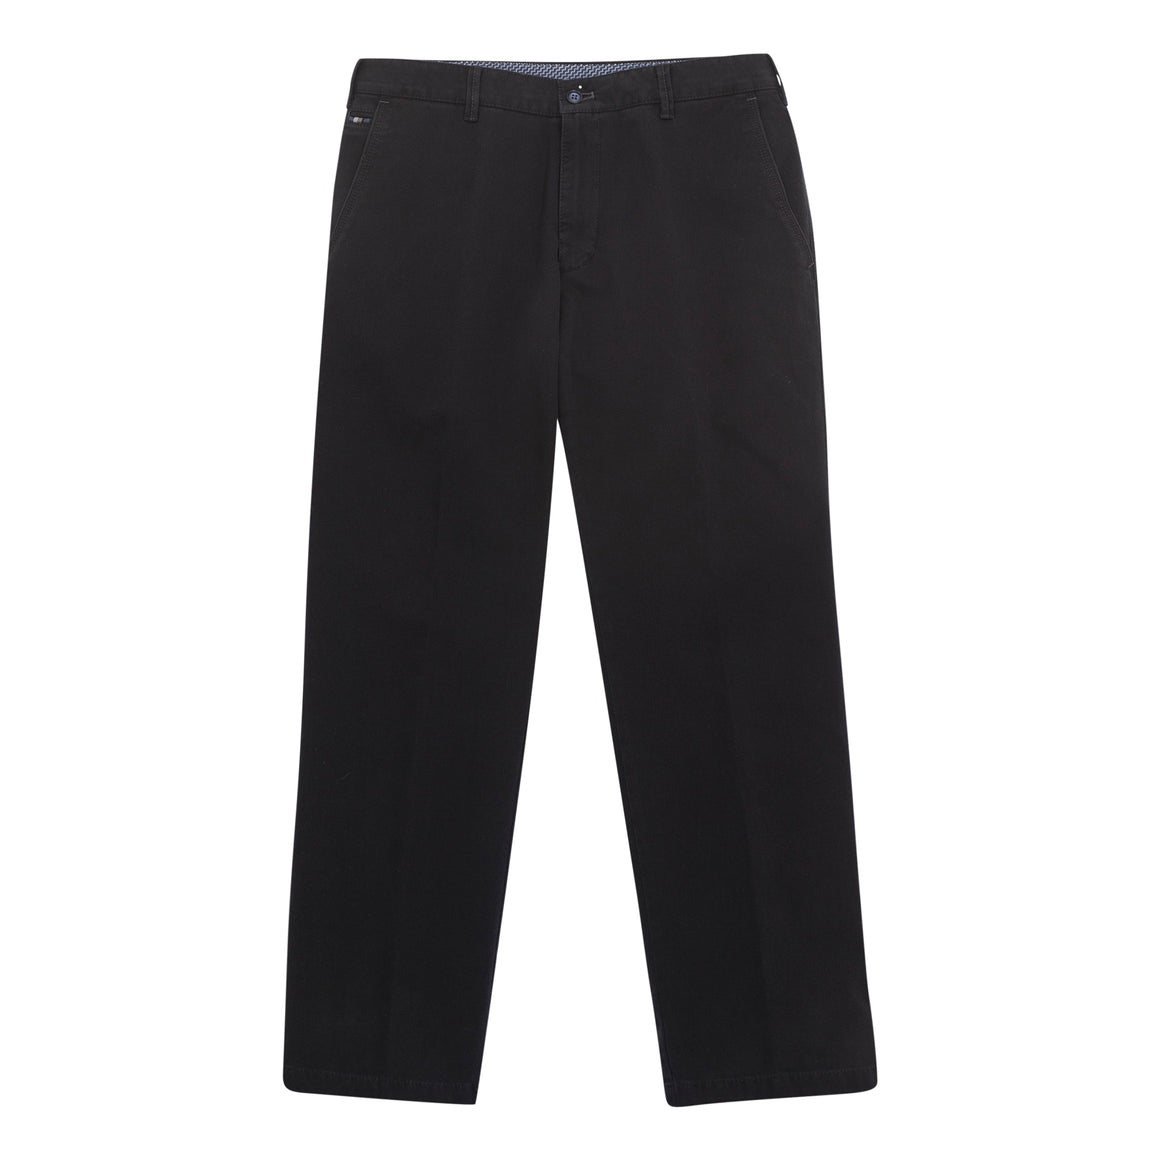 Textured Chino for Men in Black